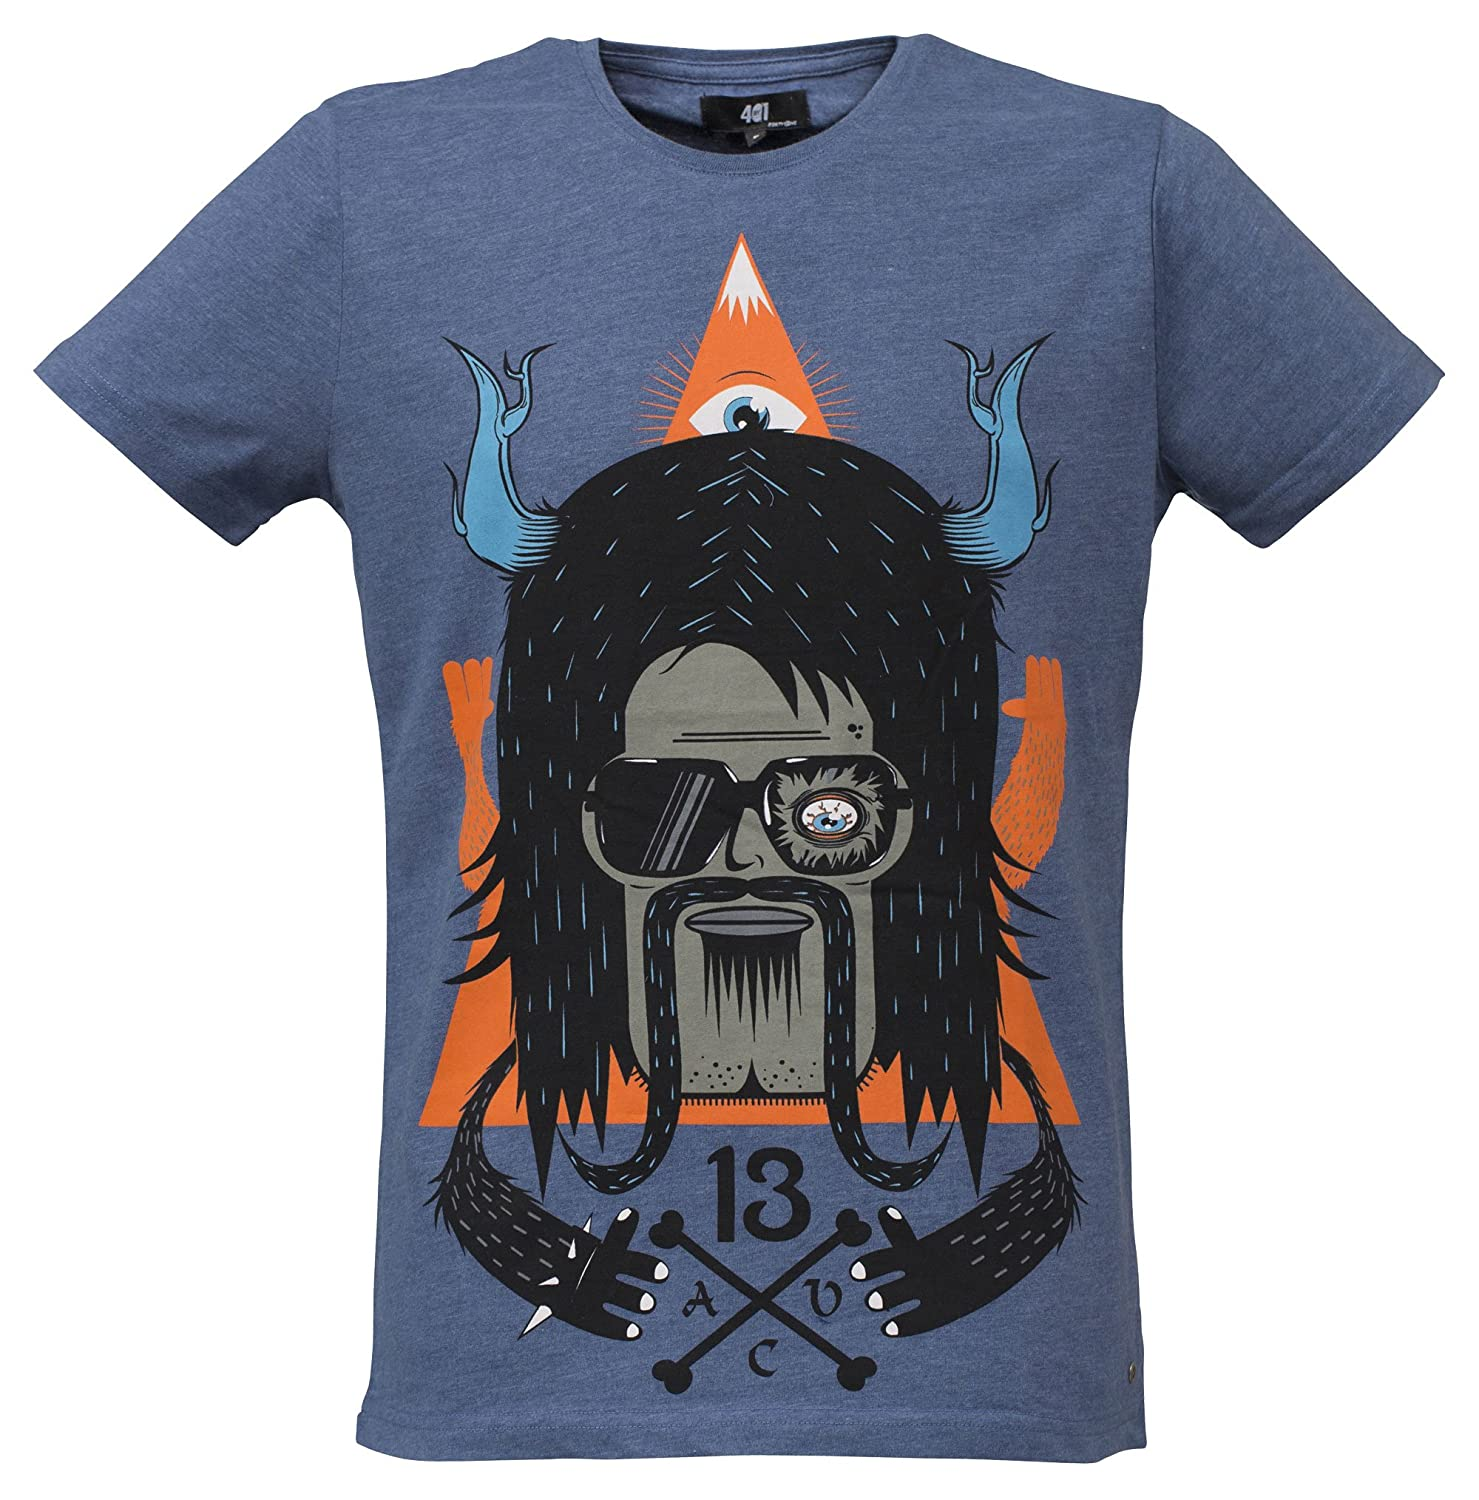 40by1, Men T-Shirt, Rocker, Rock'n'Roller, Street Couture, S/S Collection 2013, Limited Edition, blue melange, 40/1-GAS-12-006